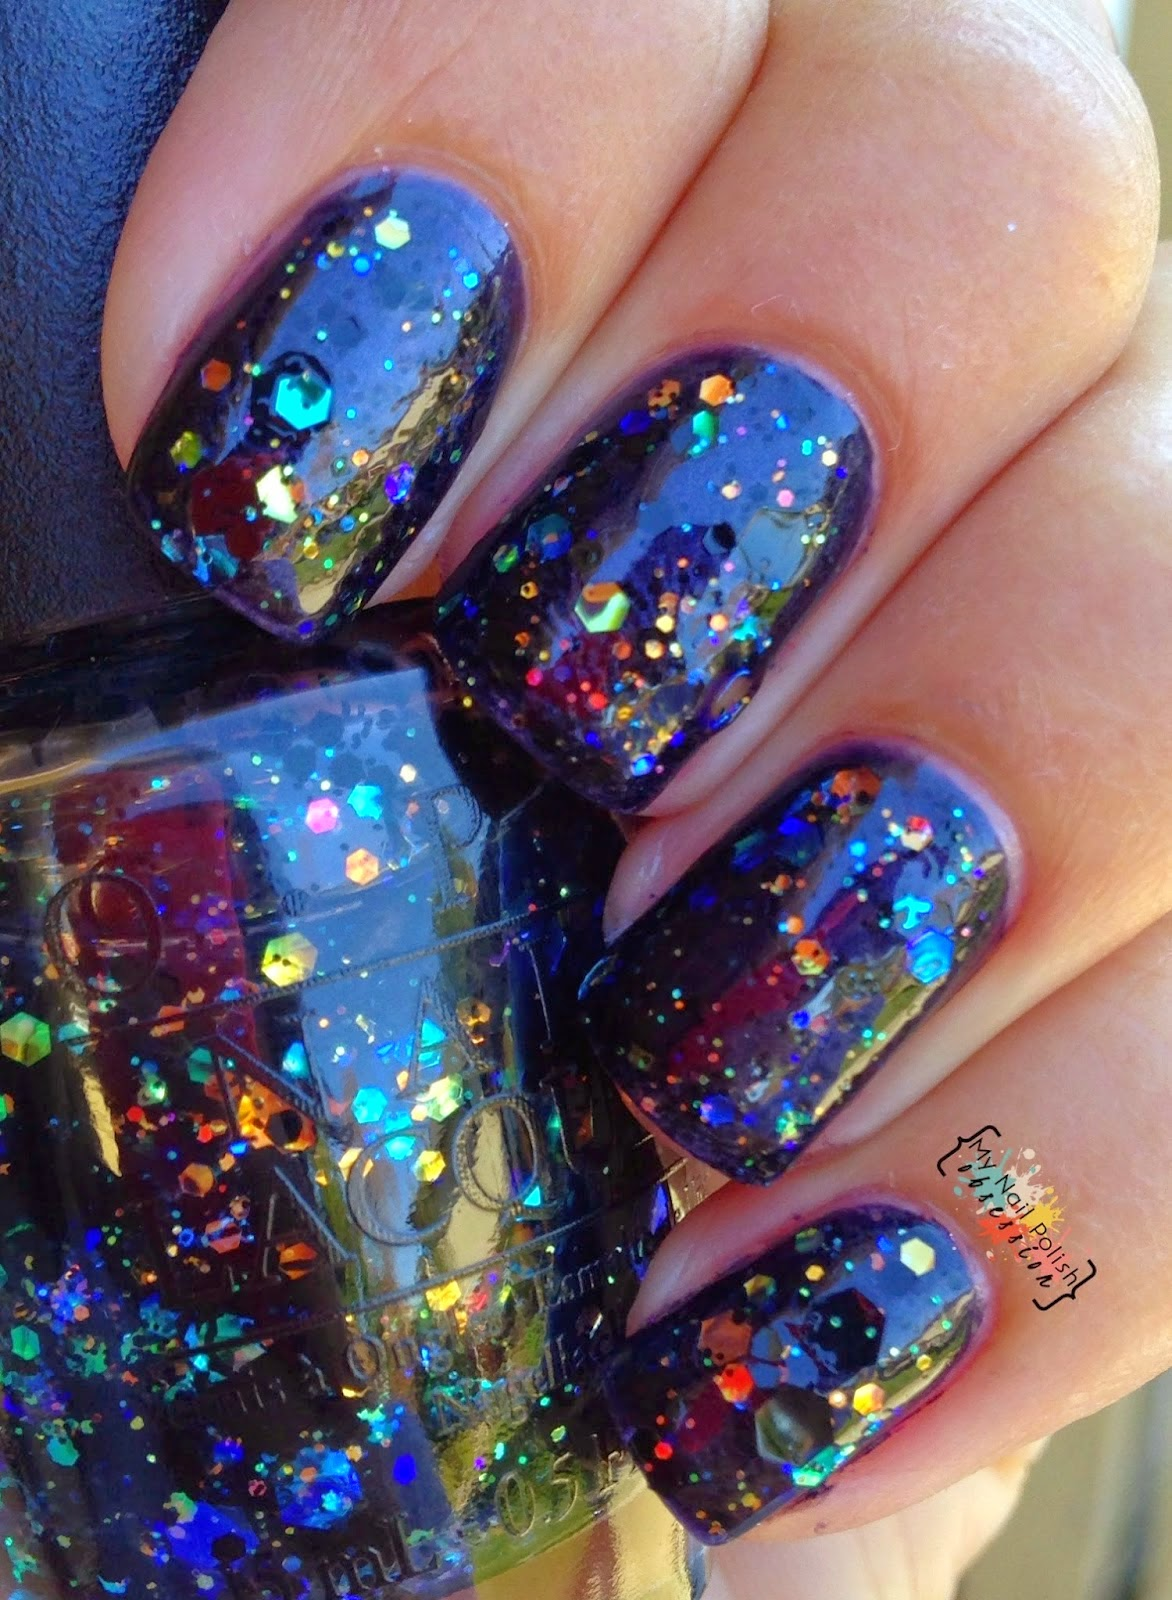 OPI Comet in the Sky